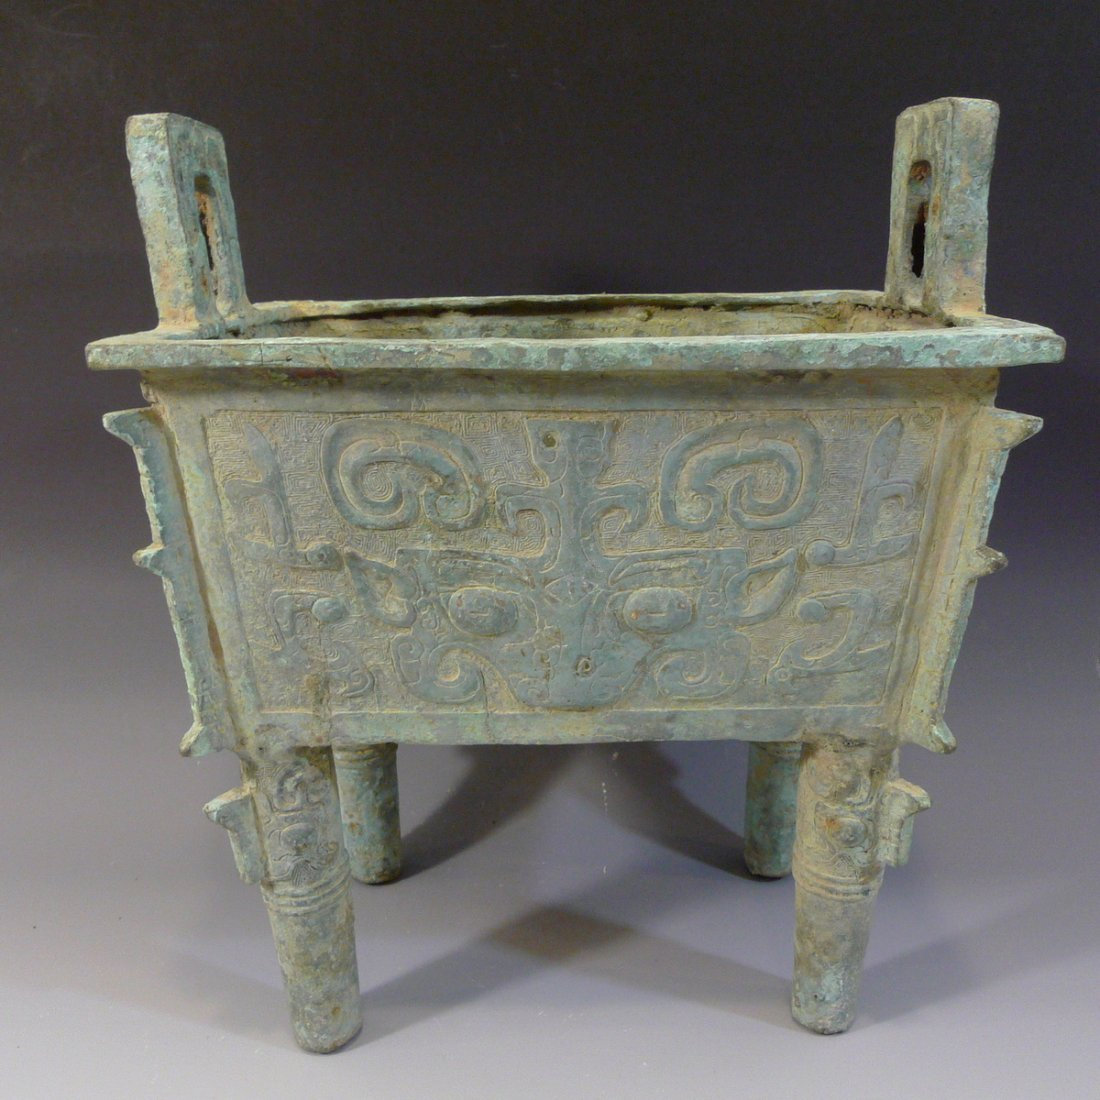 CHINESE ARCHAISTIC BRONZE DING SHANG STYLE